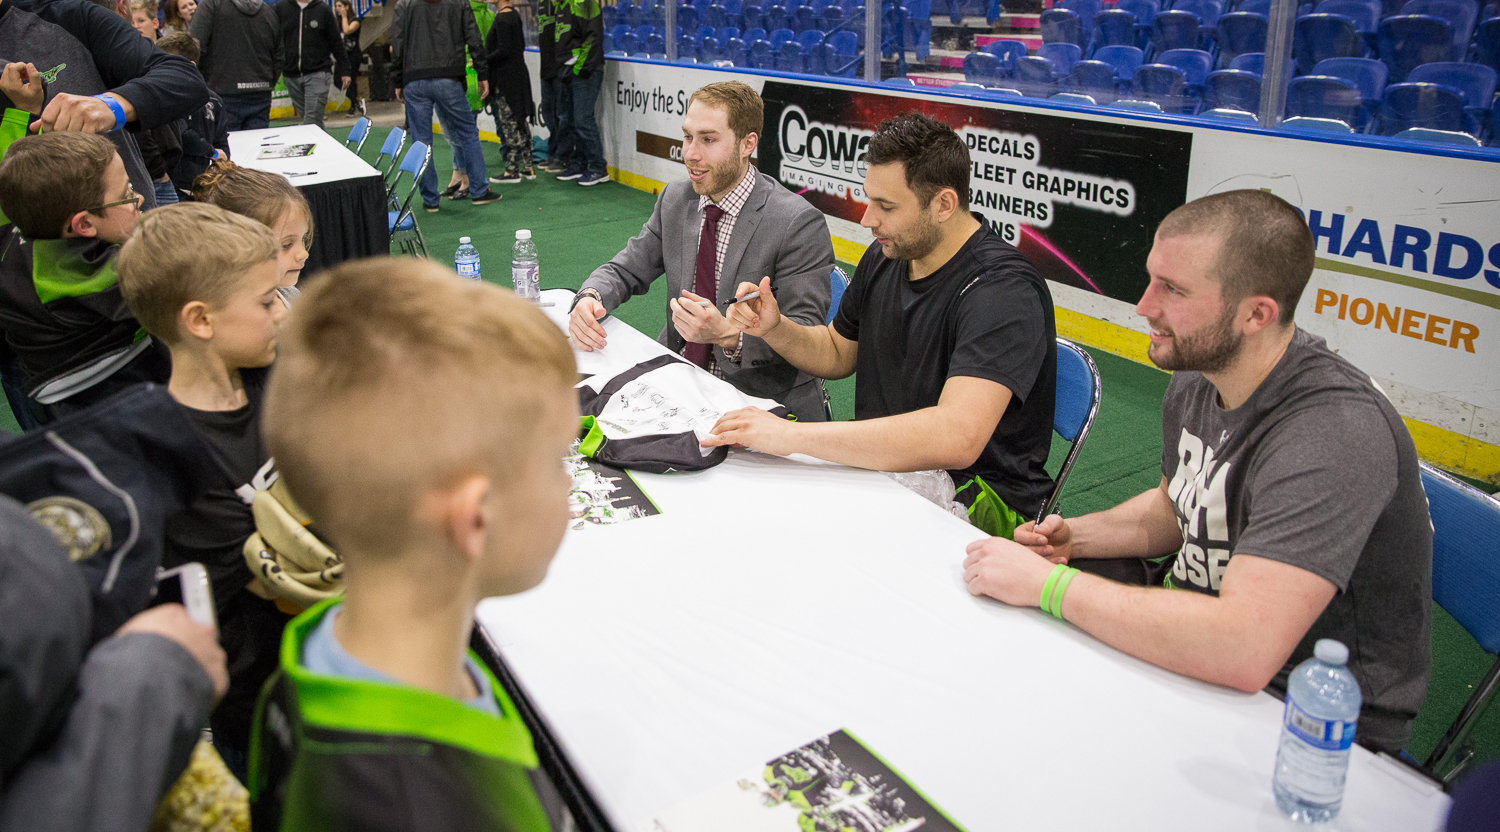 The excitement wasn't over after the final whistle, however, as young fans gathered on the field to meet some of their local lacrosse legends.